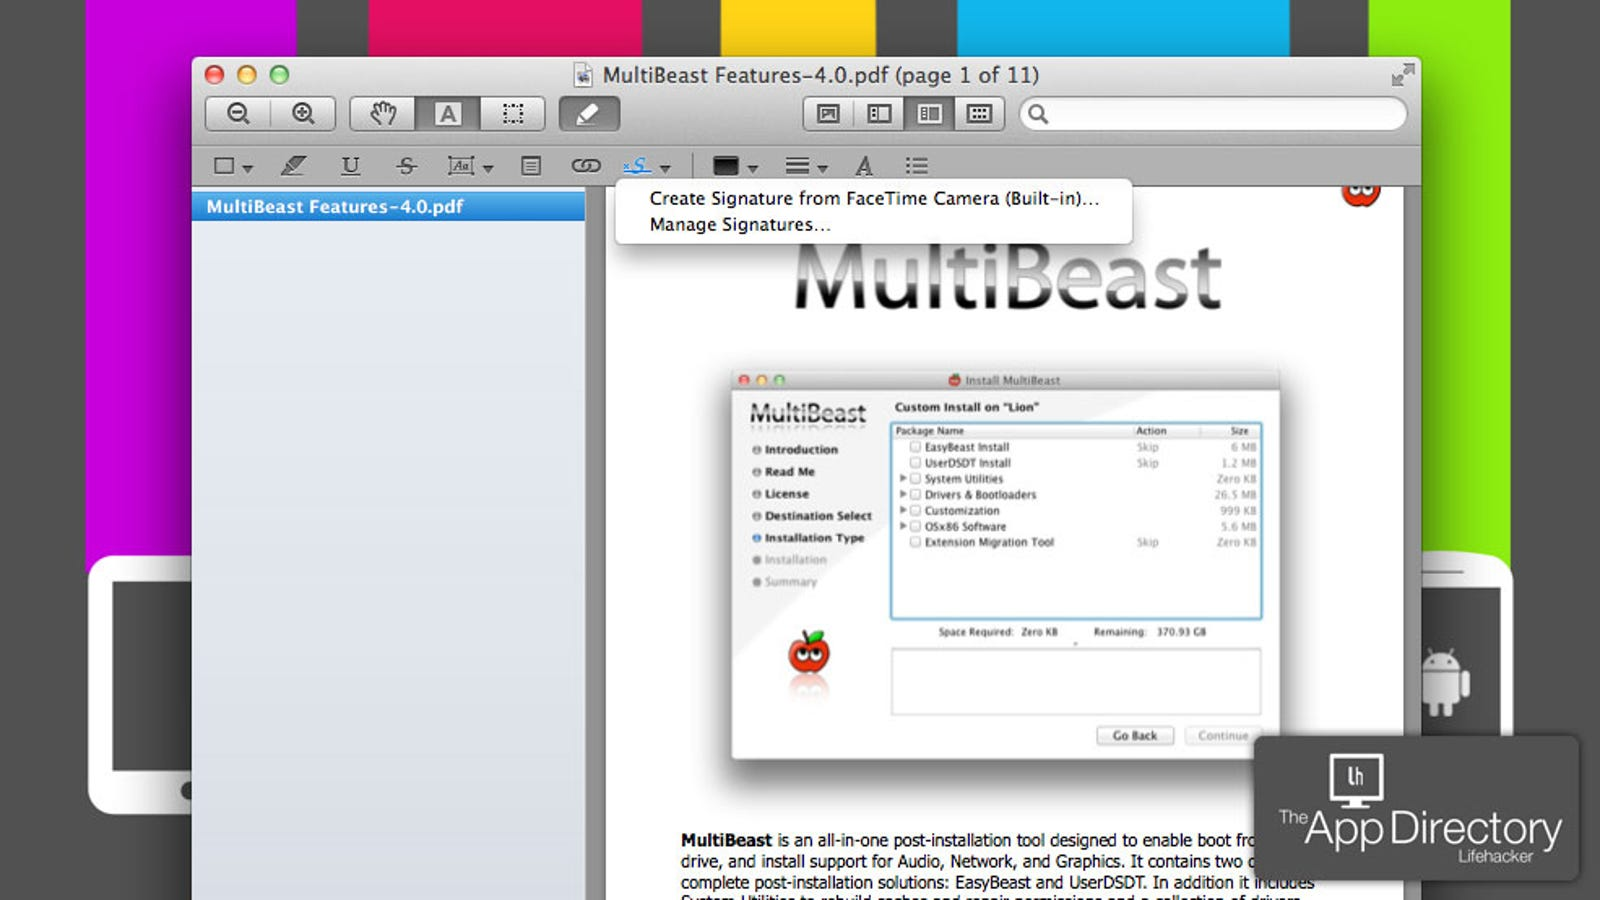 The Best PDF Viewer/Editor for Mac